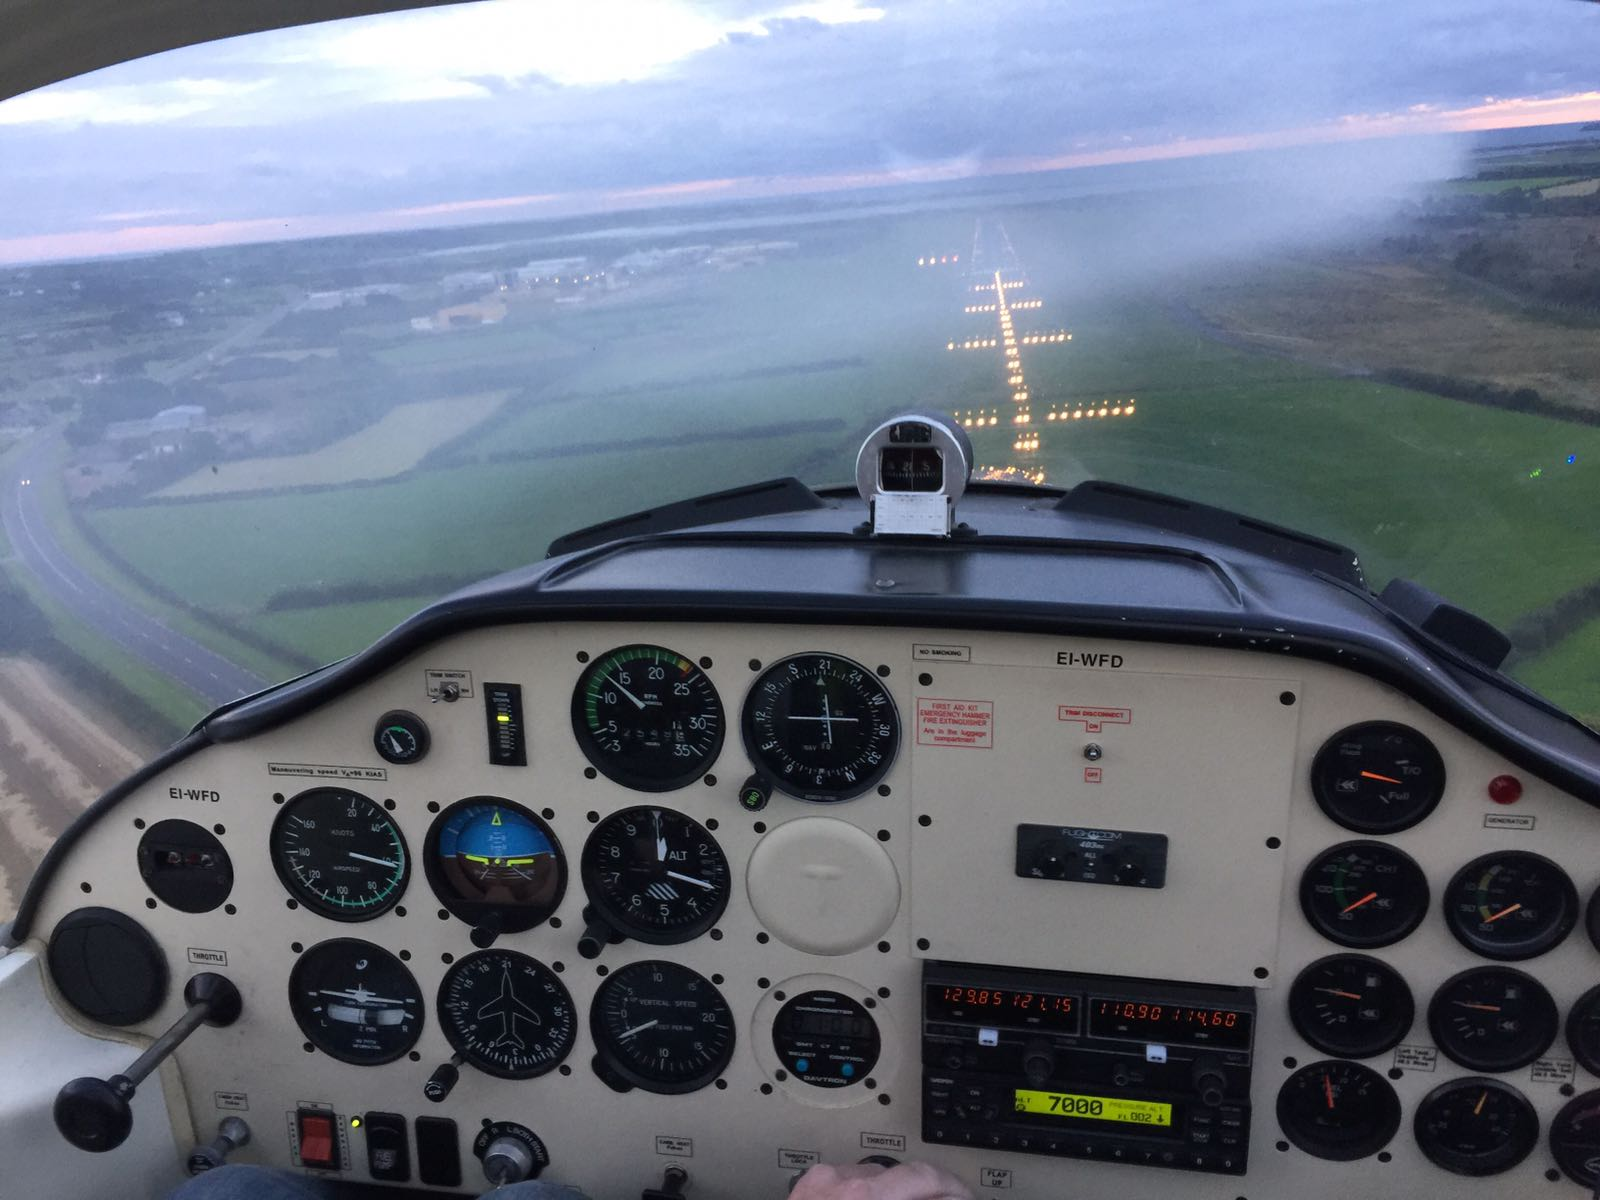 Approaching Runway 21 in Waterford in EI-WFD